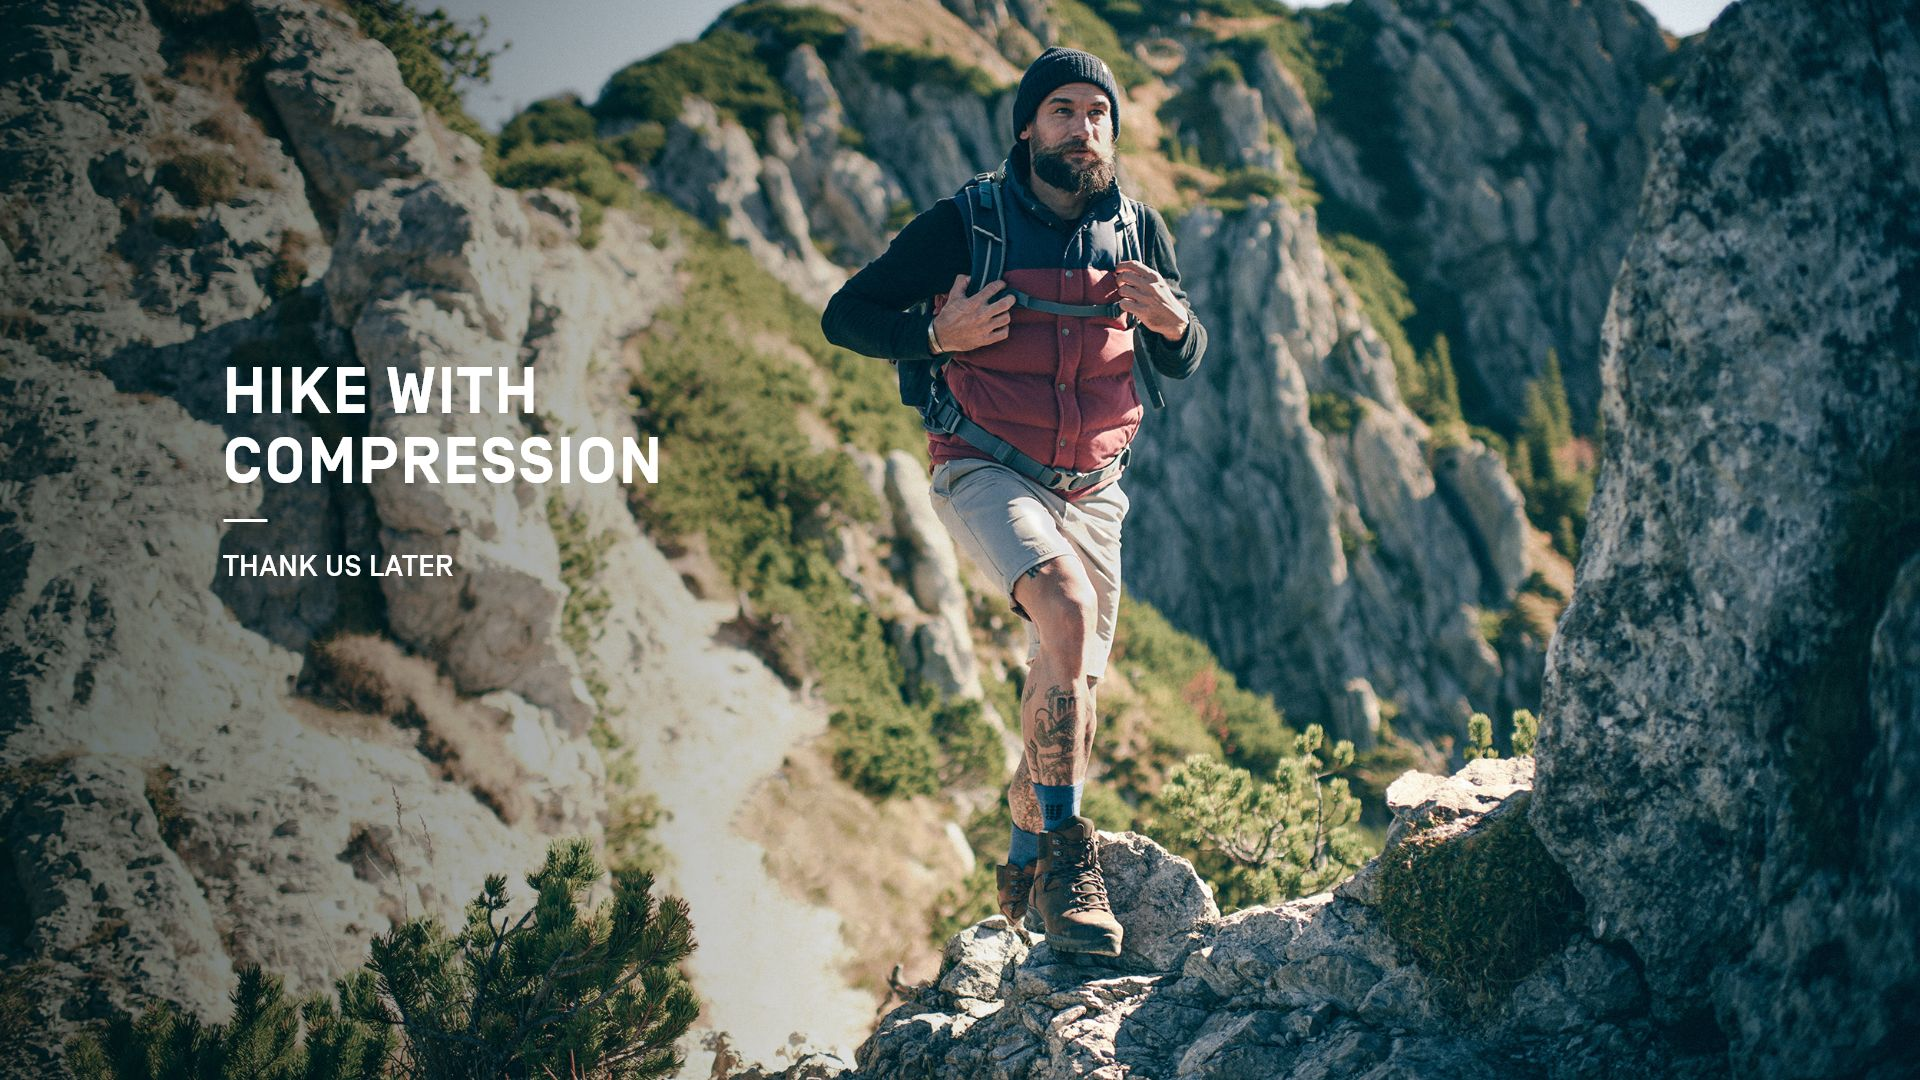 hike with compression